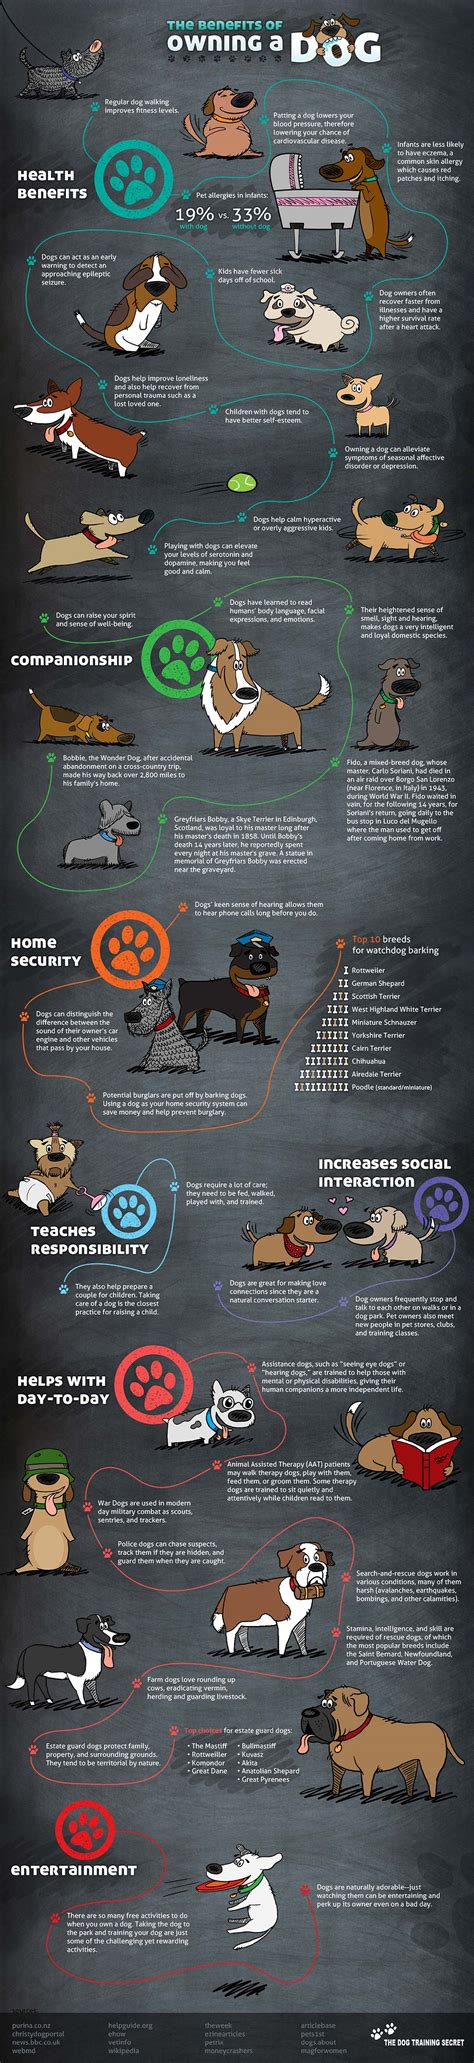 benefits of dogs benefits of owning a infographic